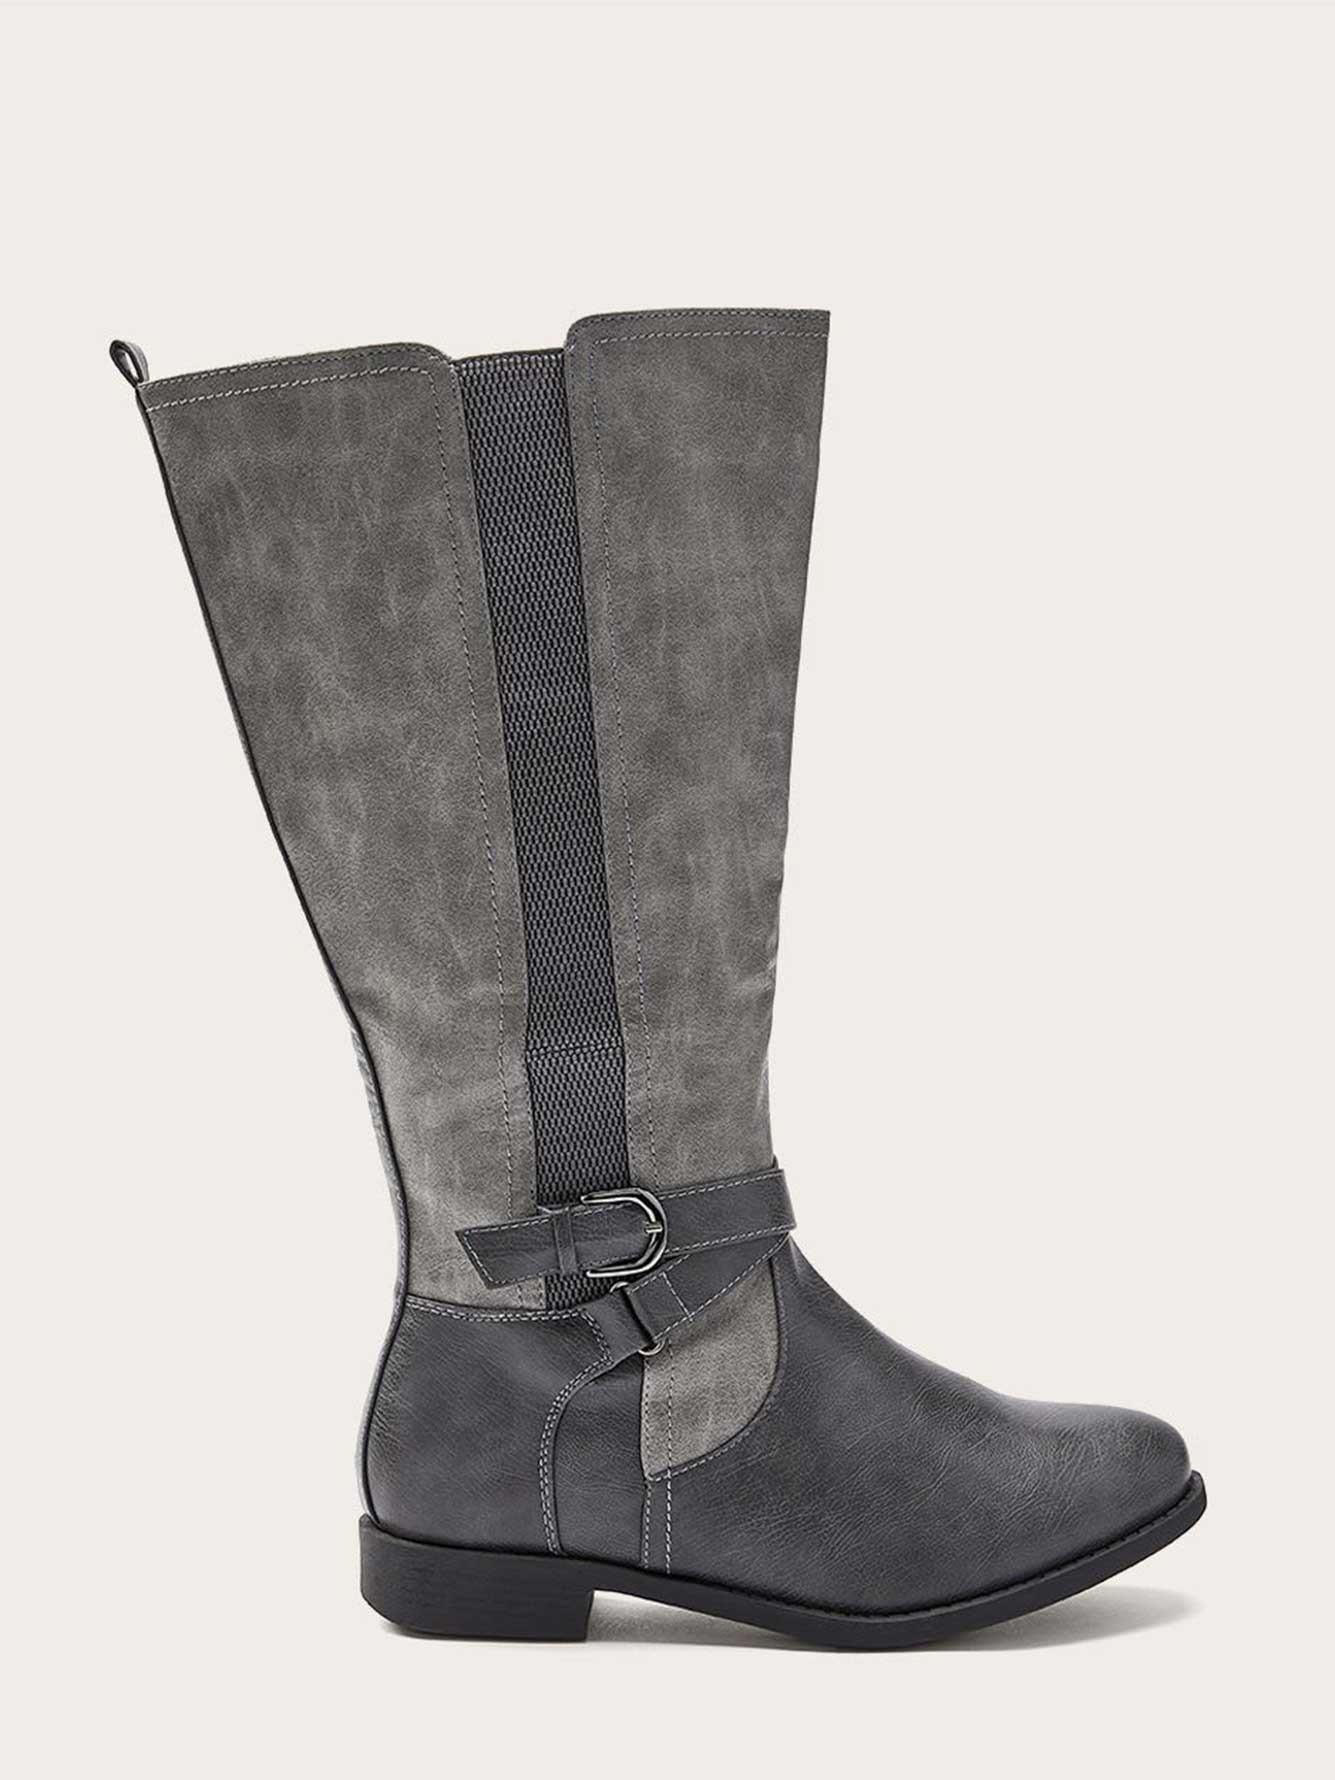 2019 year for girls- Wide extra calf boots for women cheap